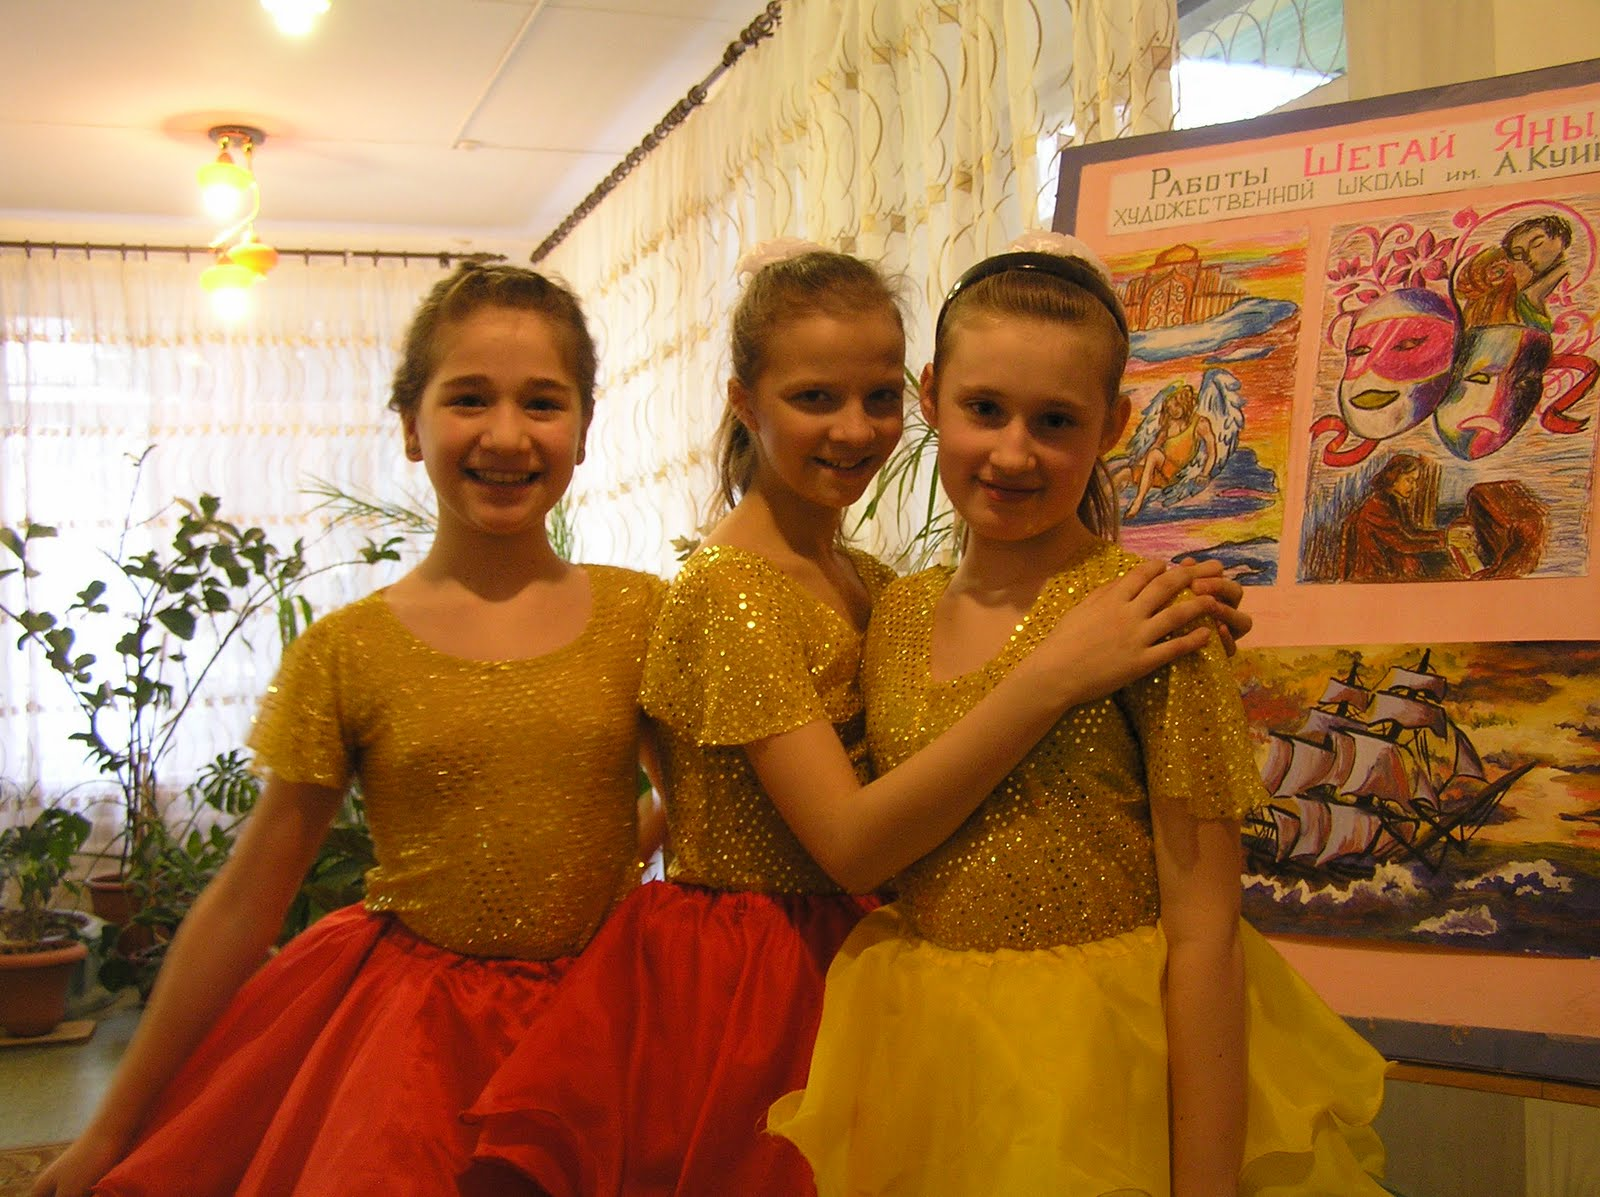 Ukrainian Angels Gallery http://echolsinukraine.blogspot.com/2011/04/angel-party.html